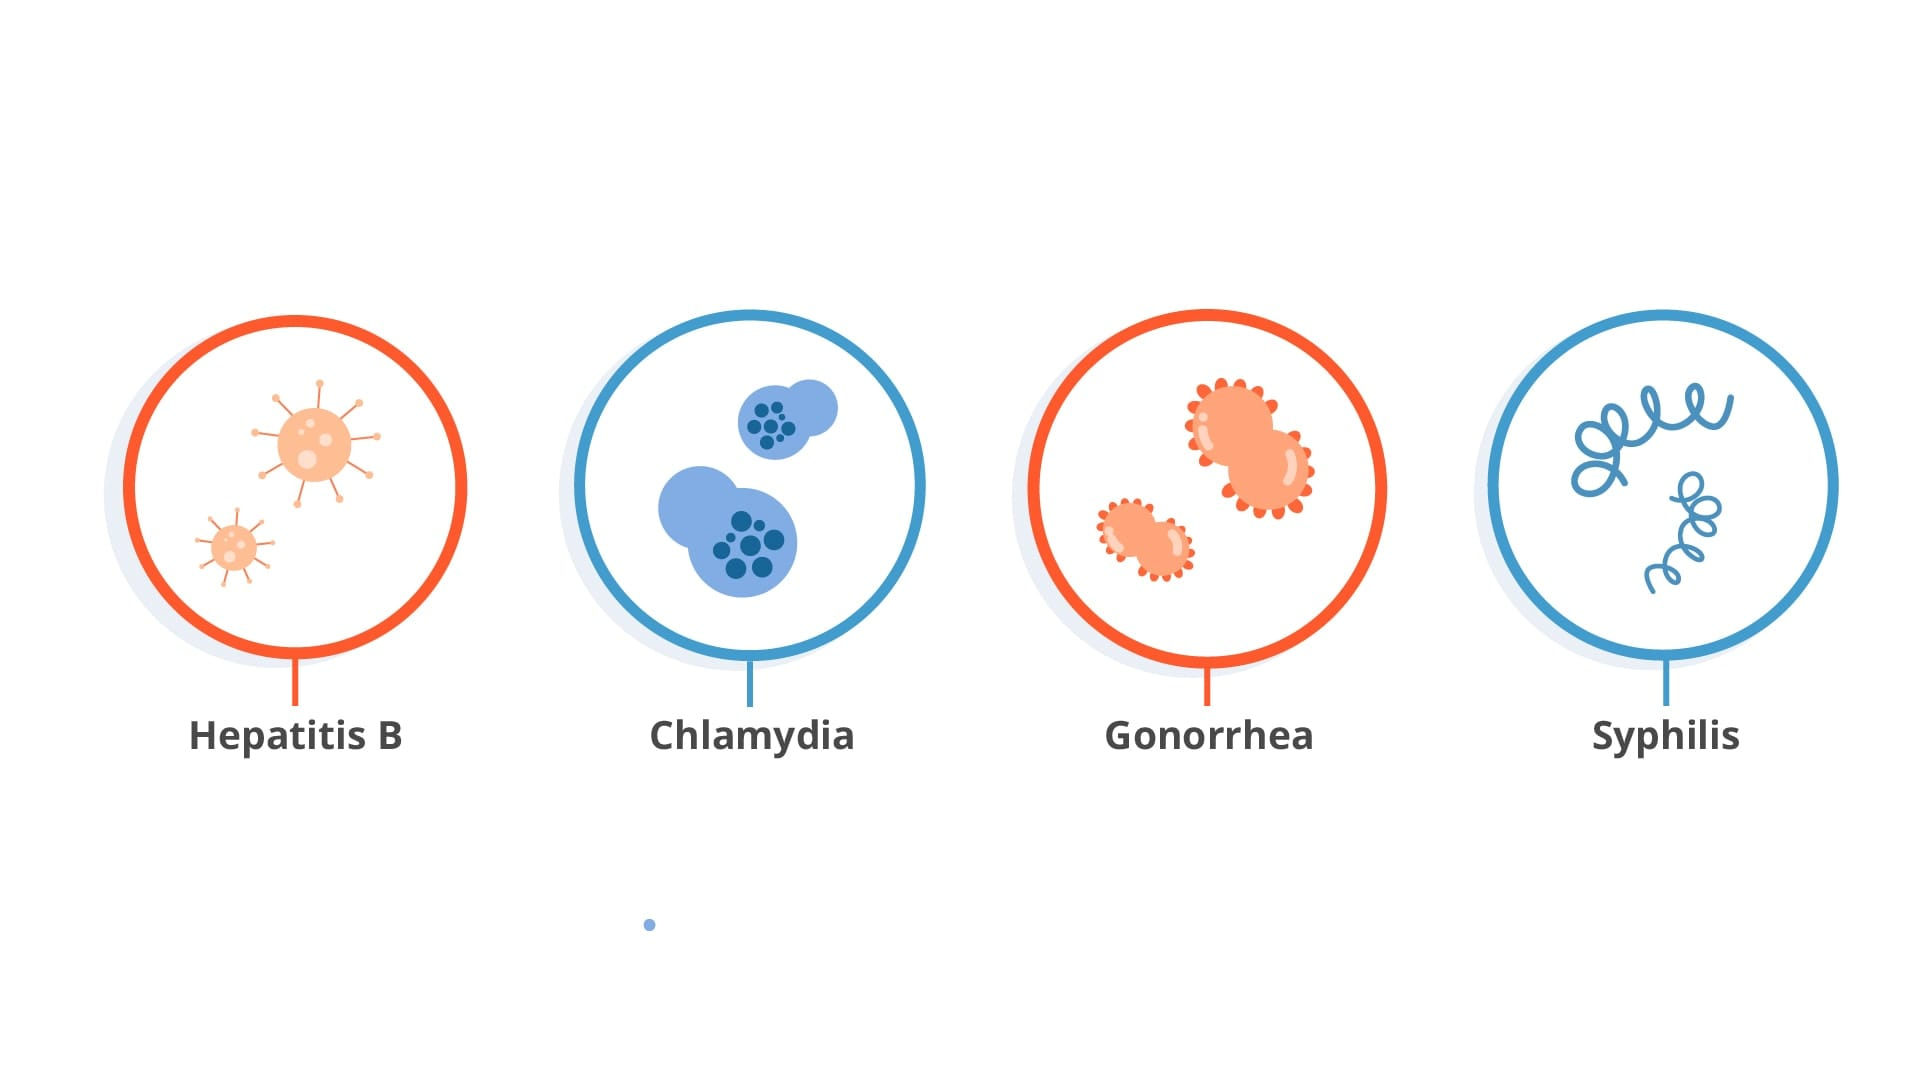 Close ups of Hepatitis B, Chlamydia, Gonorrhea, and Syphilis.